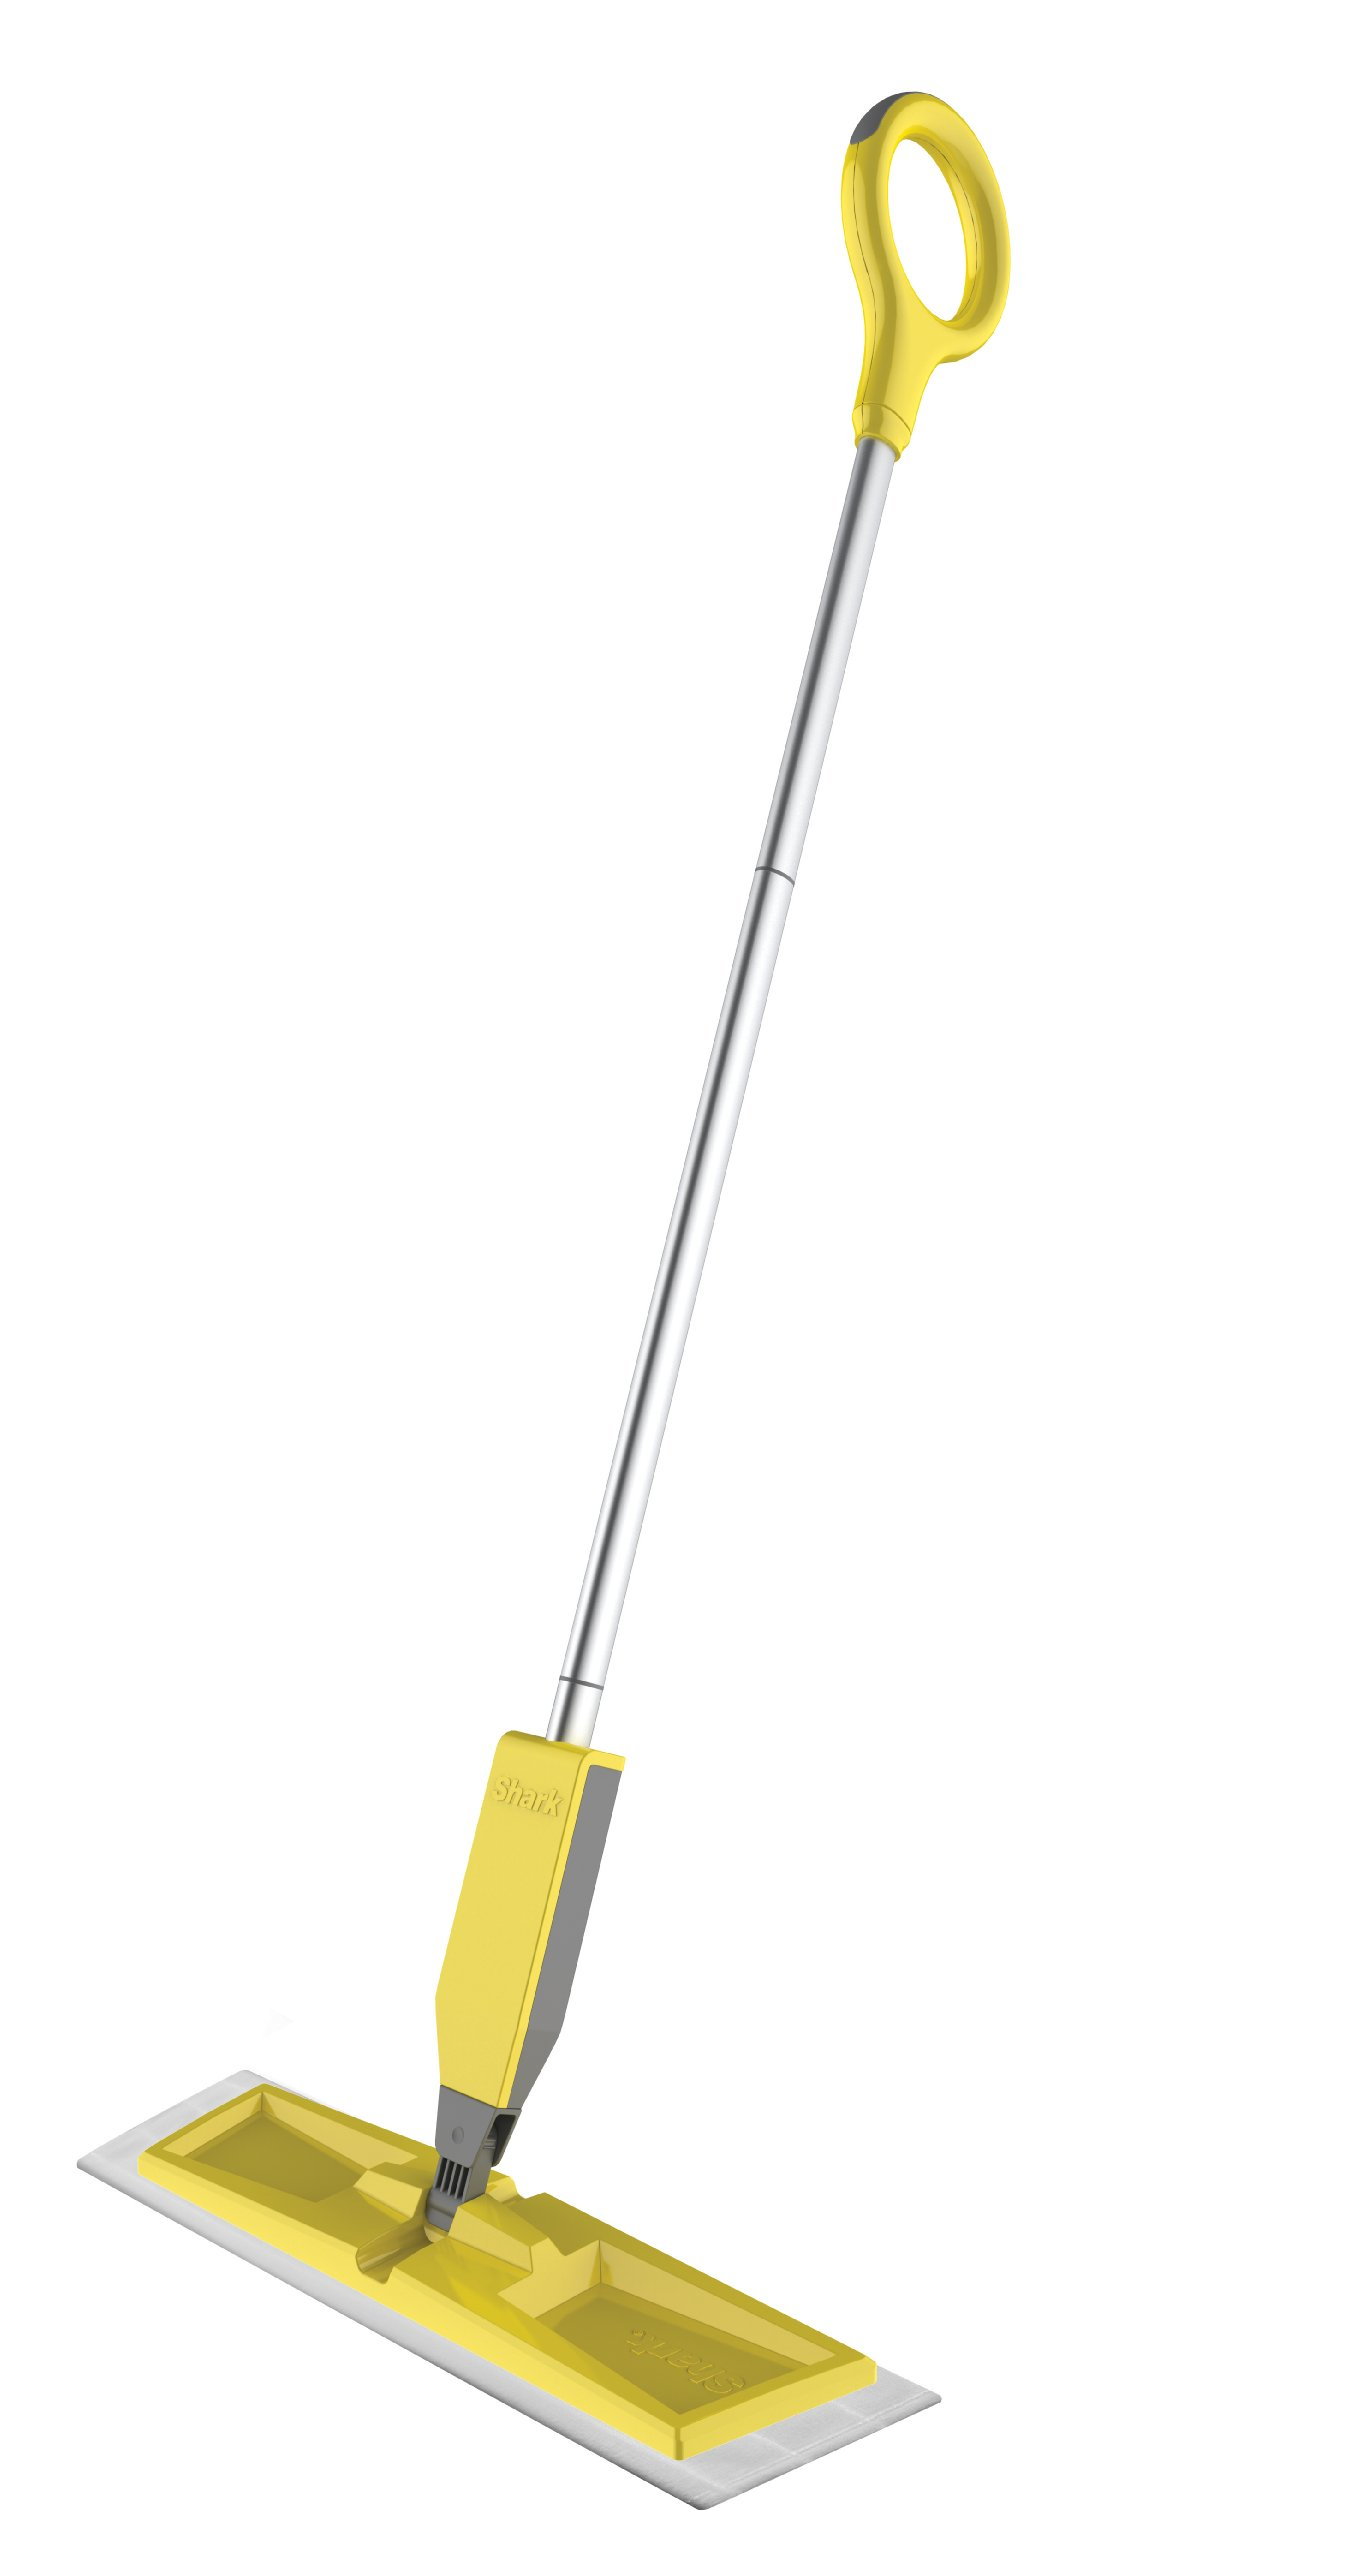 Shark Professional Duster Mop Hard floor Cleaner with 360-Degree Steering and Supersized Mop Head (ST110WM)